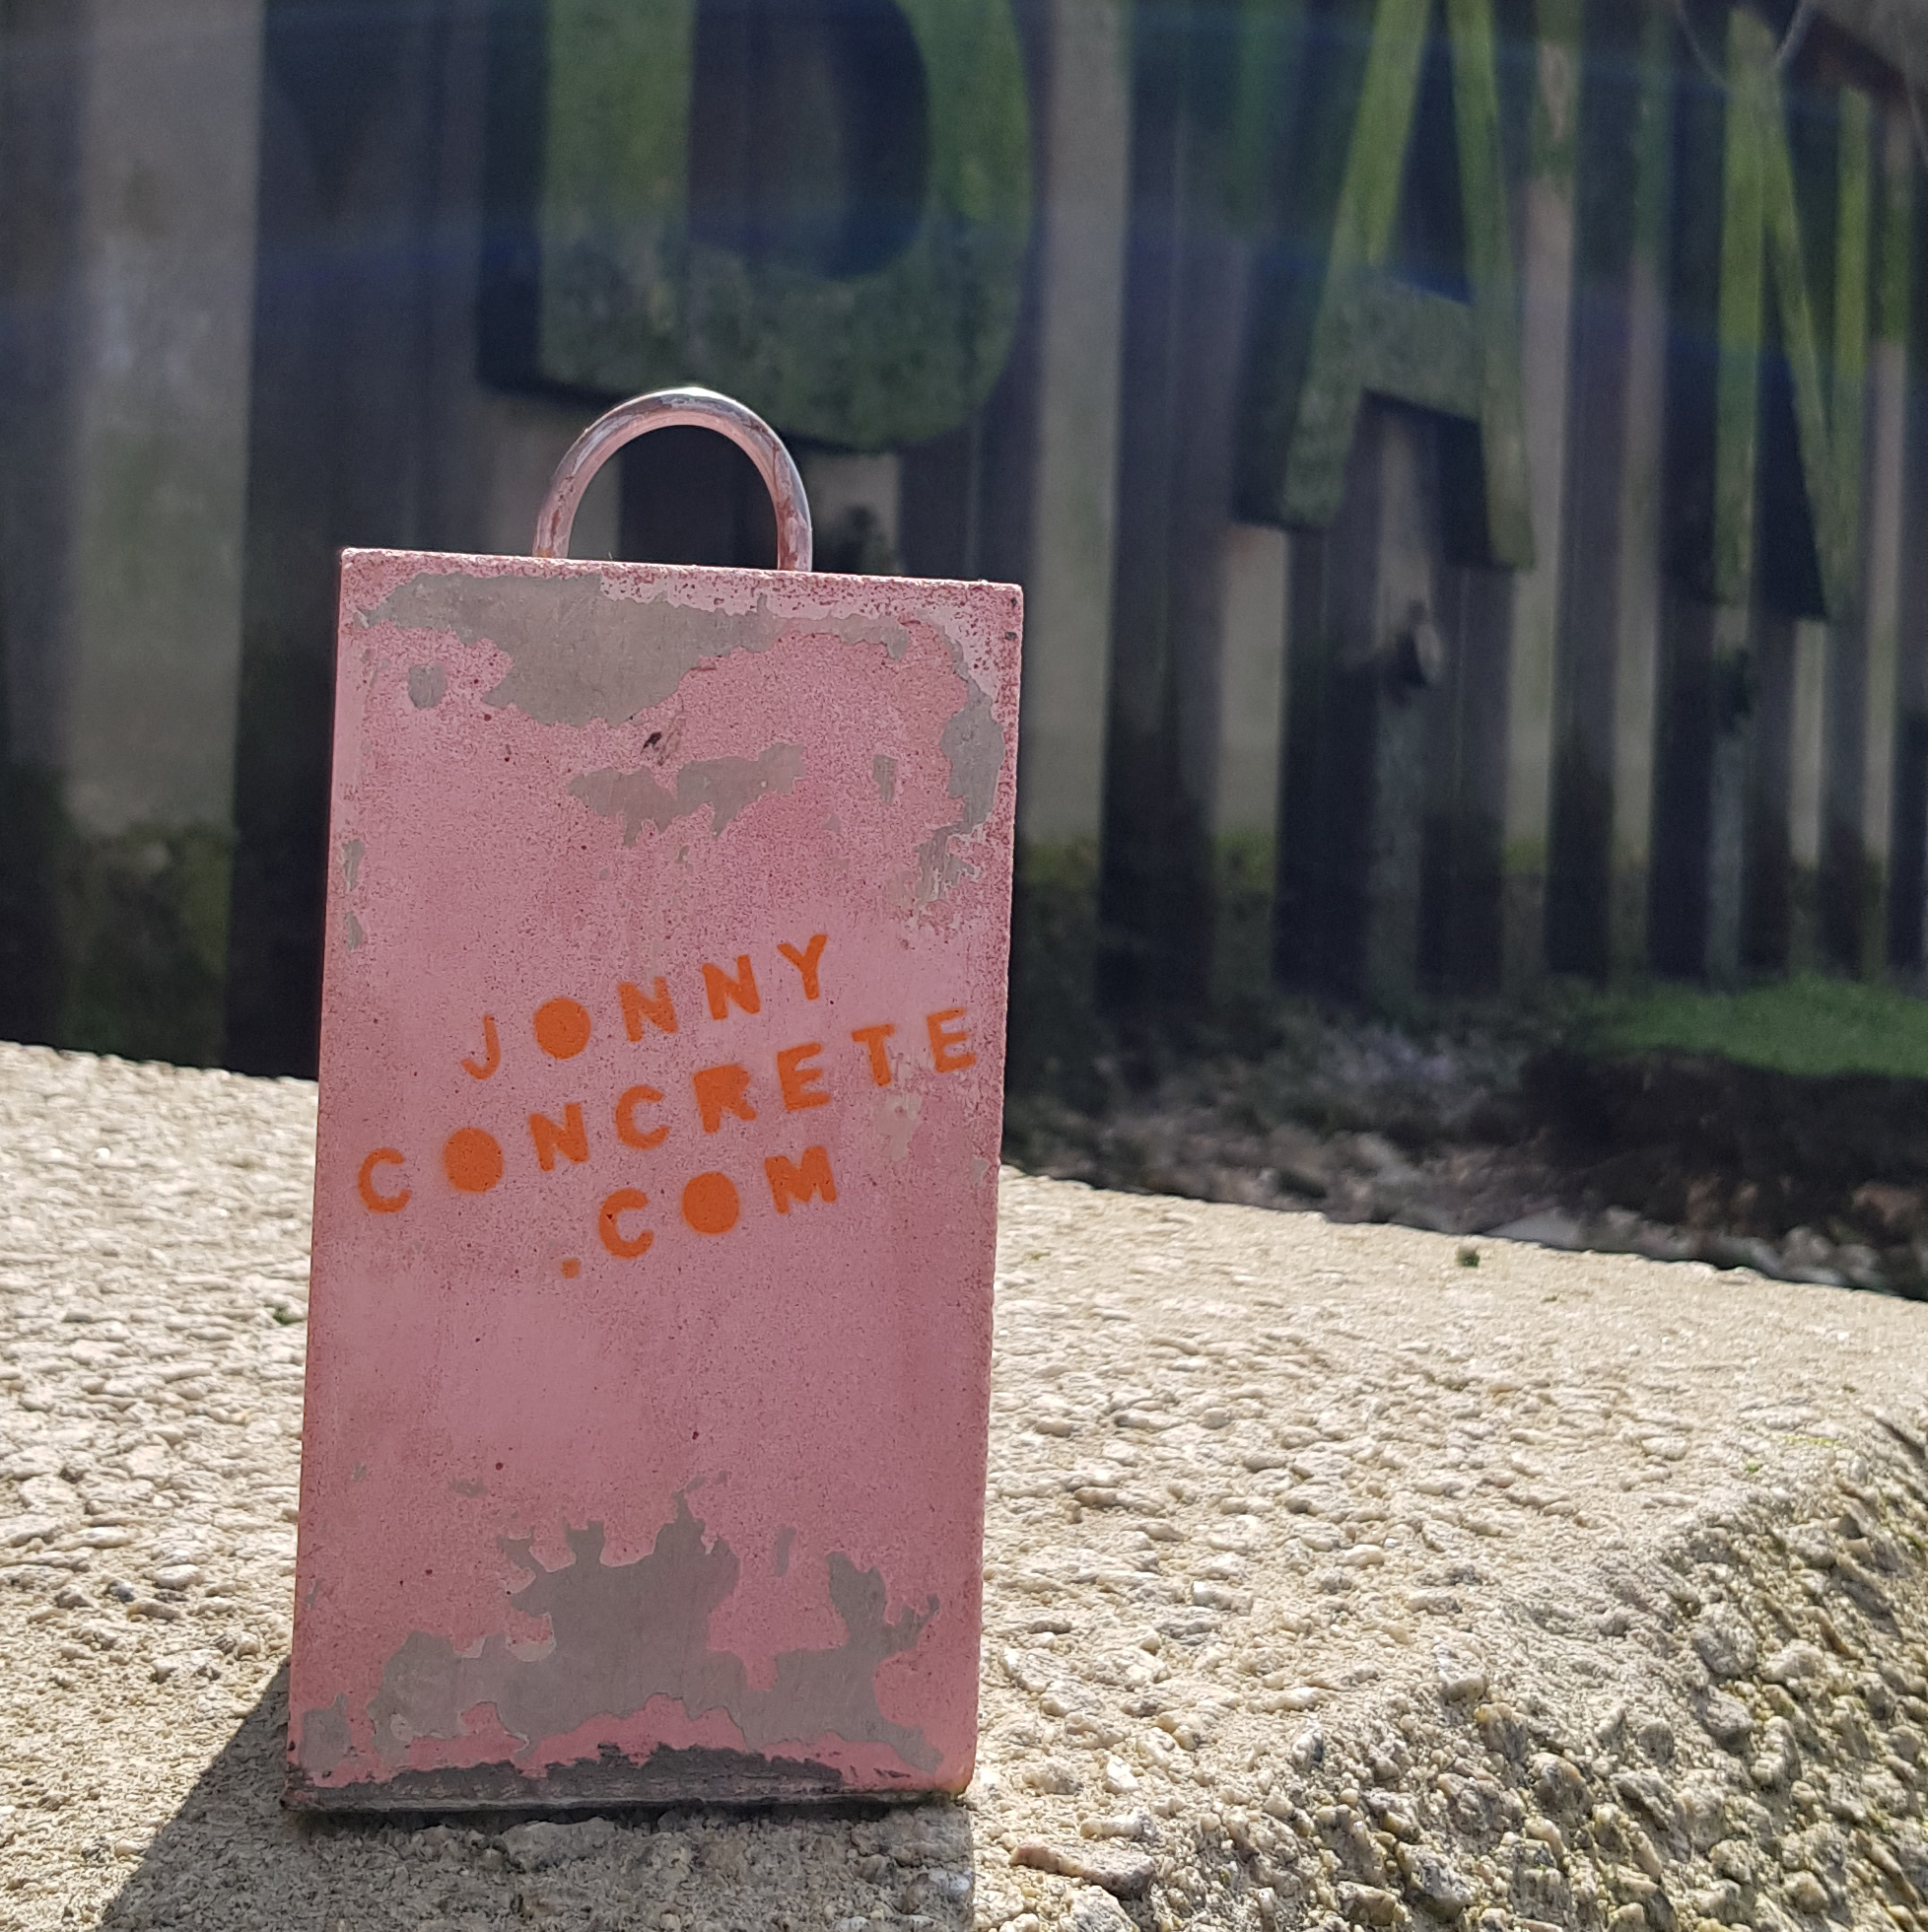 We've joined up with Jonny Concrete, who makes awesome concrete furniture, and produces these superb doorstops with his spare material - so no waste, which we LOVE. What we also love is that he then hides them around London for people to find, with a few pointers along the way. Keen to join in the fun, we have taken 1 each and will be turning them into unique pieces of art for you to find. We will be giving out clues nearer the time.   http://jonnyconcrete.com